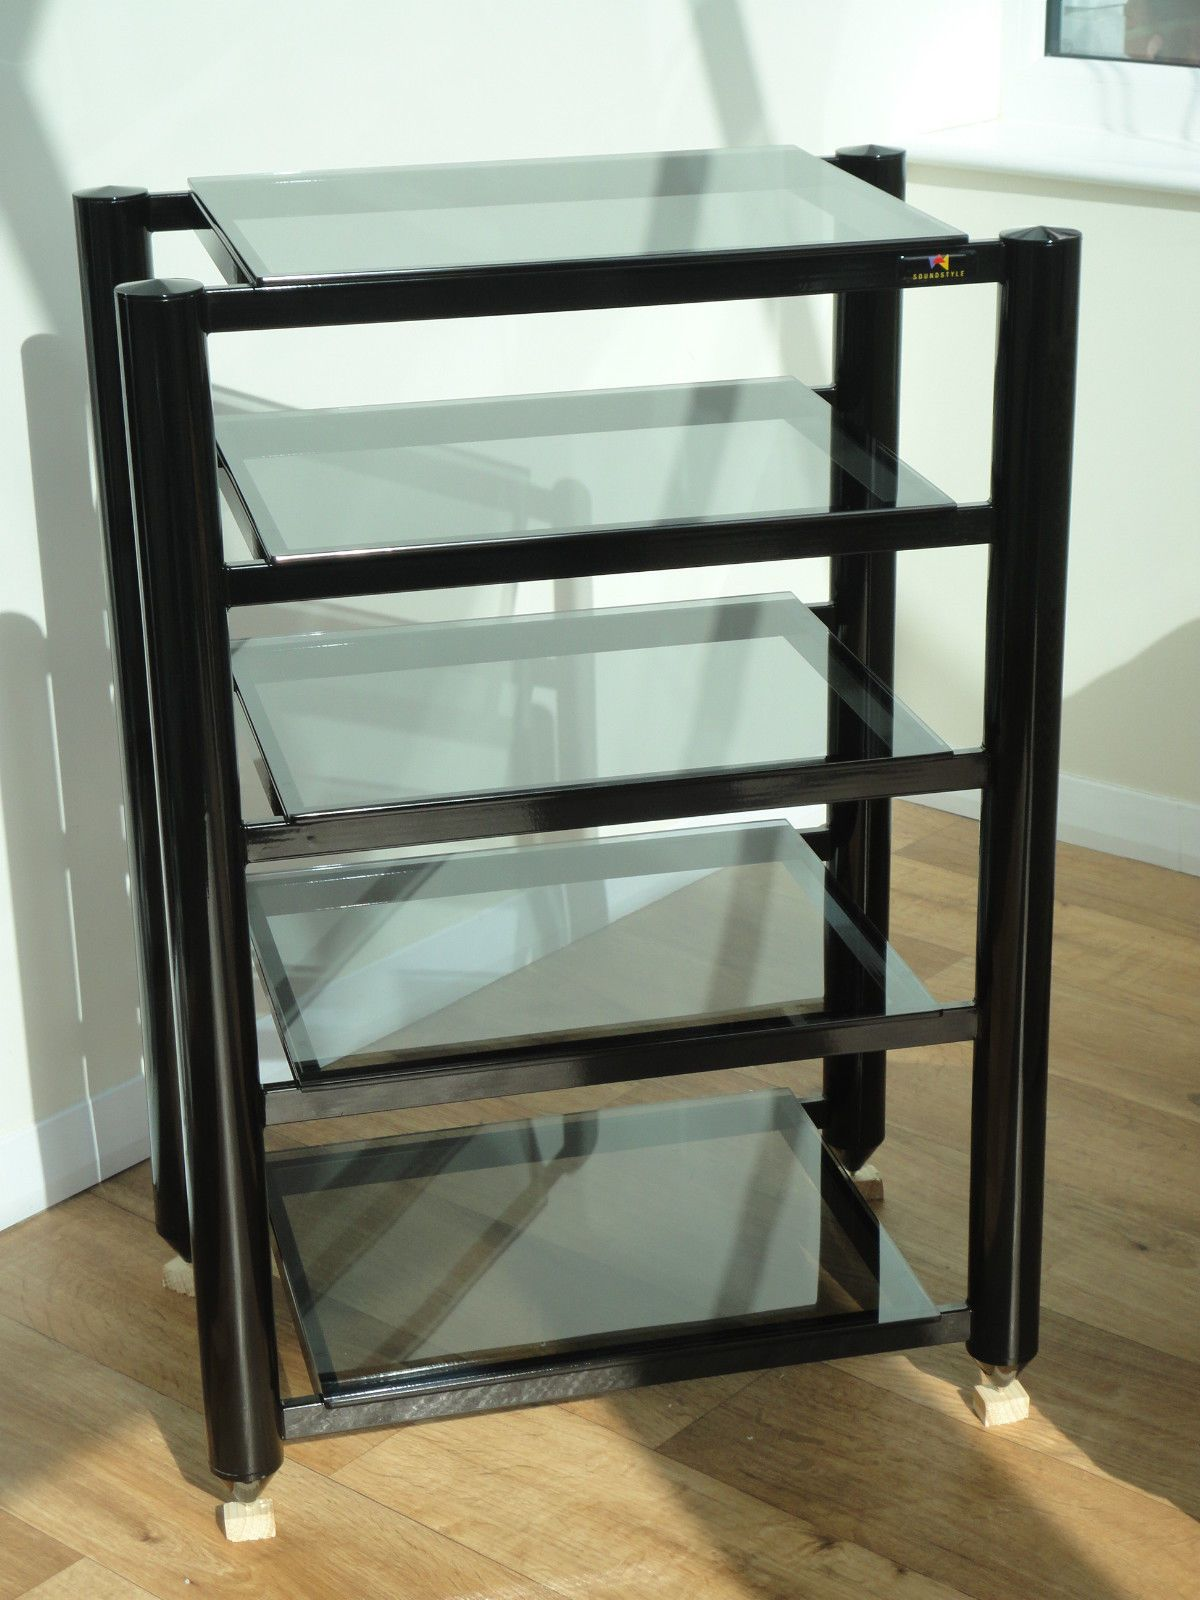 Hifi Rack Design Soundstyle Hi Fi Audio Rack Black With Tinted Glass Shelves